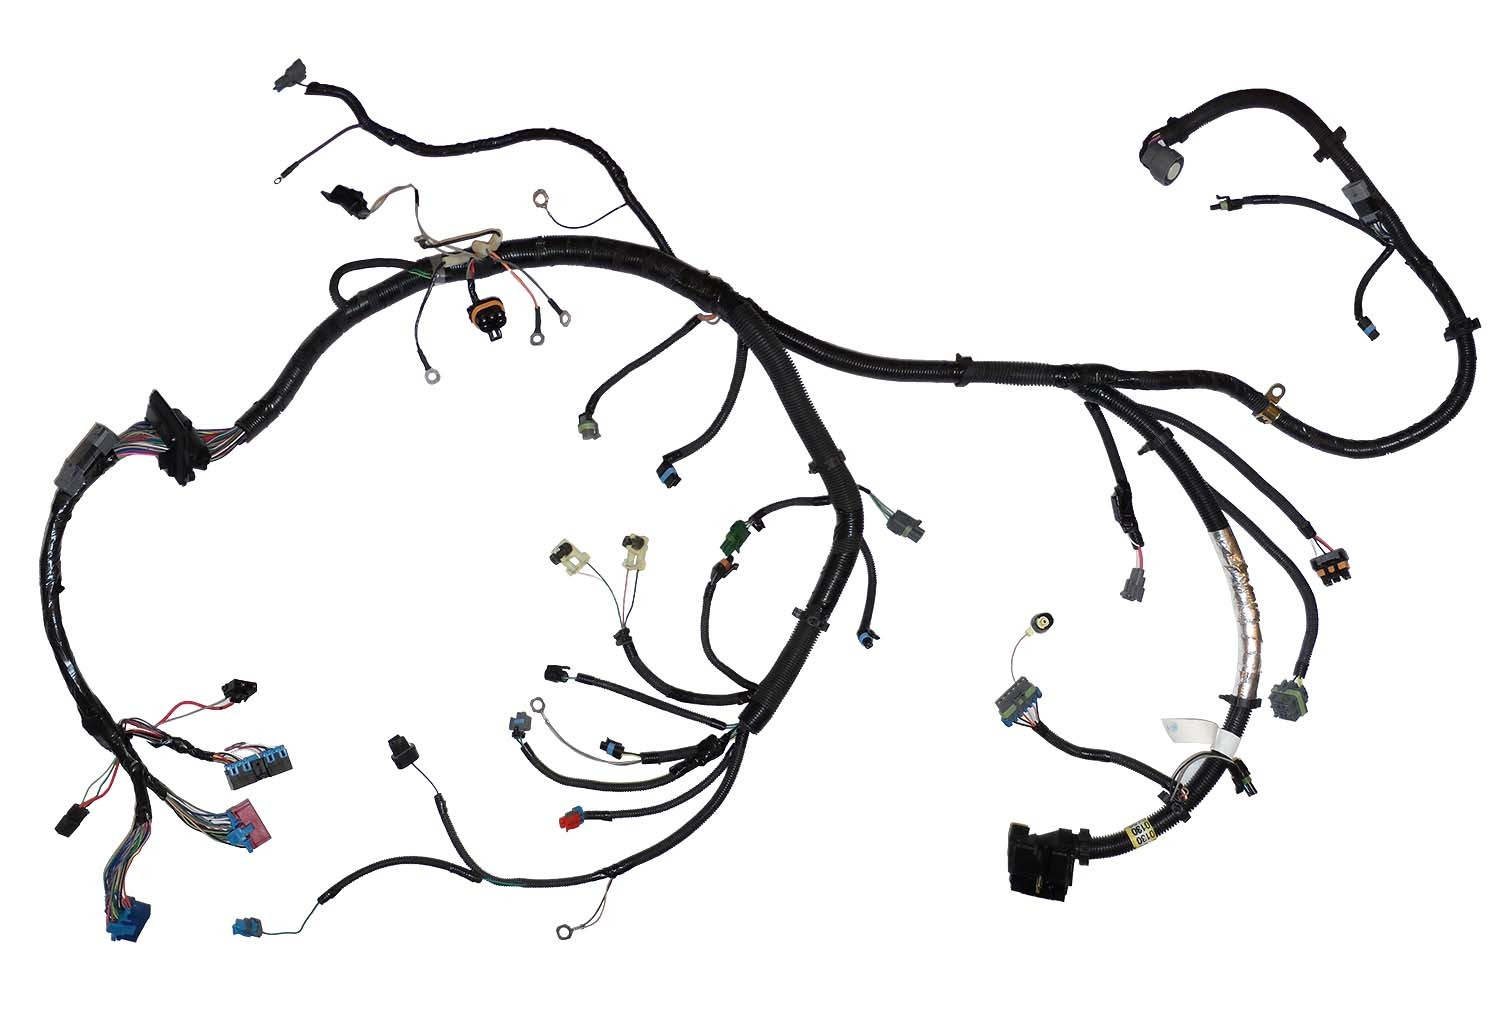 12150130 OEM TBI Engine Wiring Harness 92-96 5.0L 5.7L 305 350 GM Truck ~  Auto Parts OnlineParts Highway